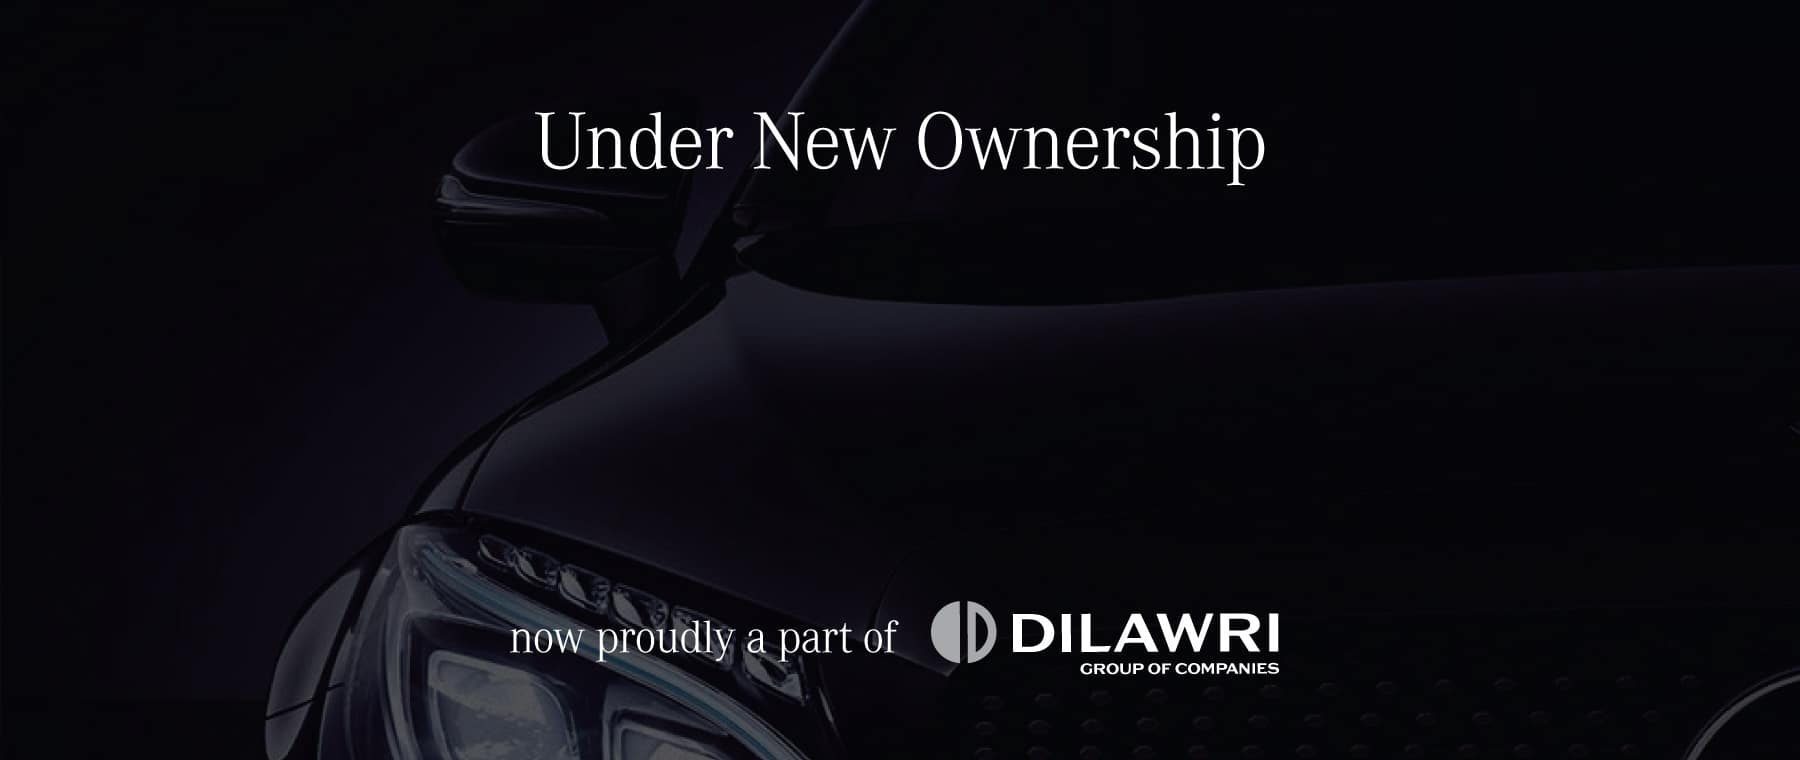 Now part of Dilawri Group of Companies